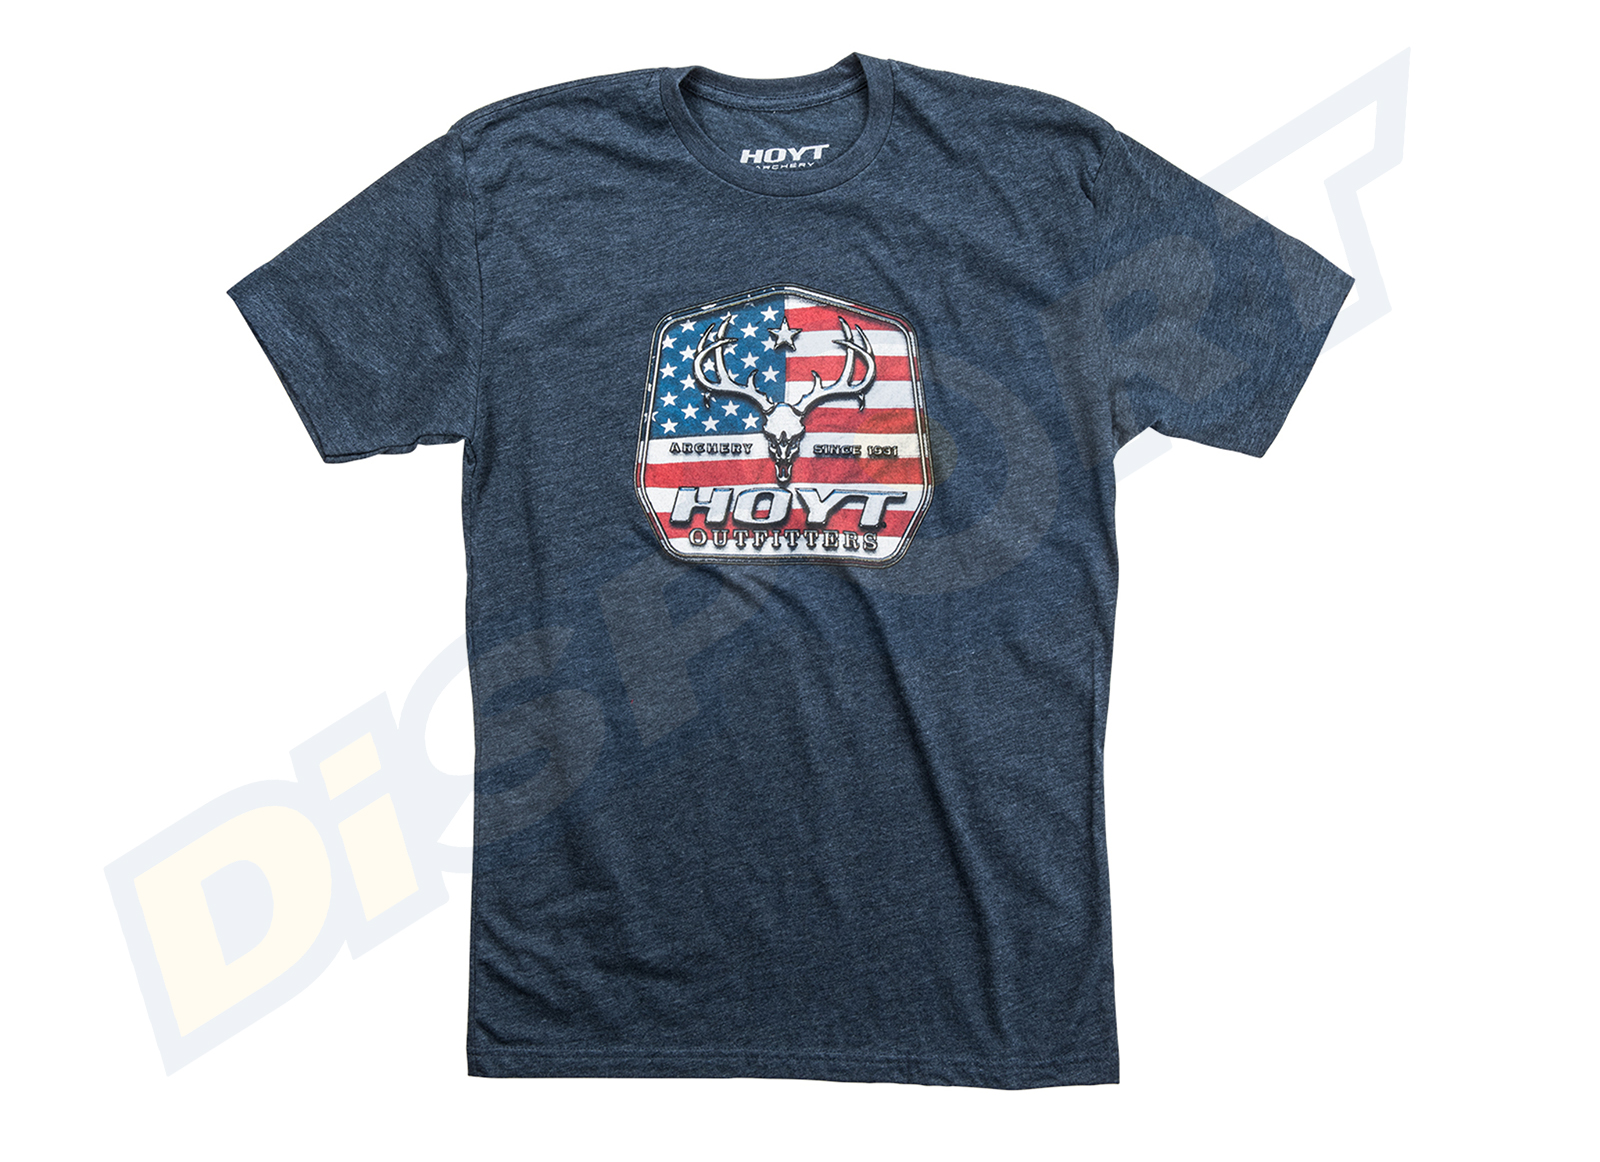 HOYT T-SHIRT UOMO USA HOYT OUTFITTERS